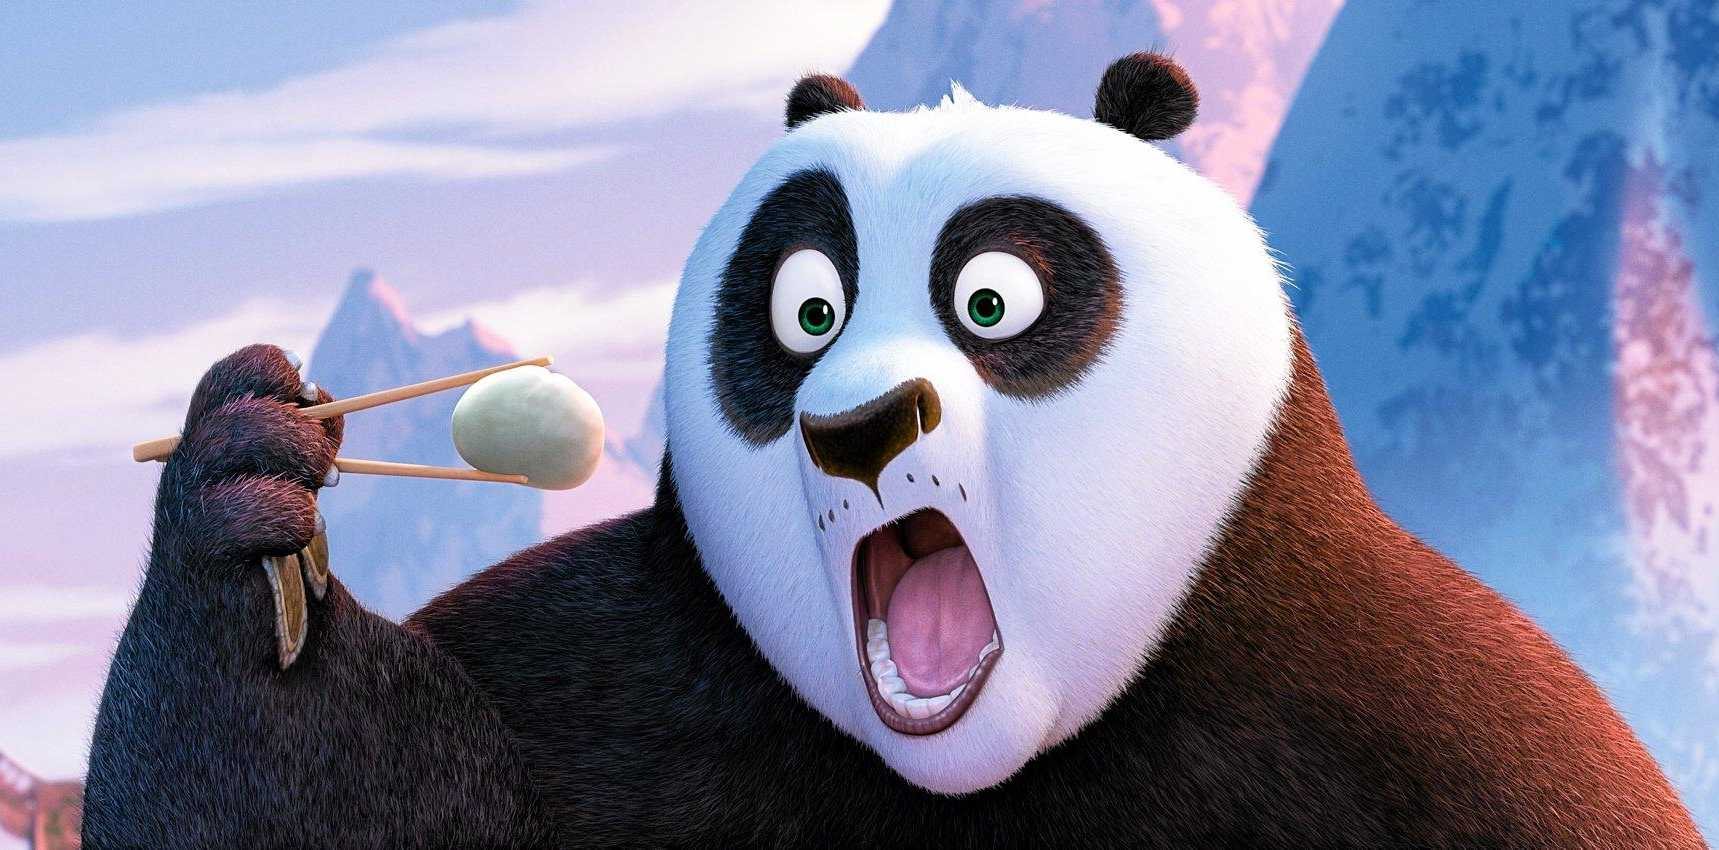 FOR REVIEW AND PREVIEW PURPOSES ONLY. A scene from the movie Kung Fu Panda 3. Supplied by Fox Australia.